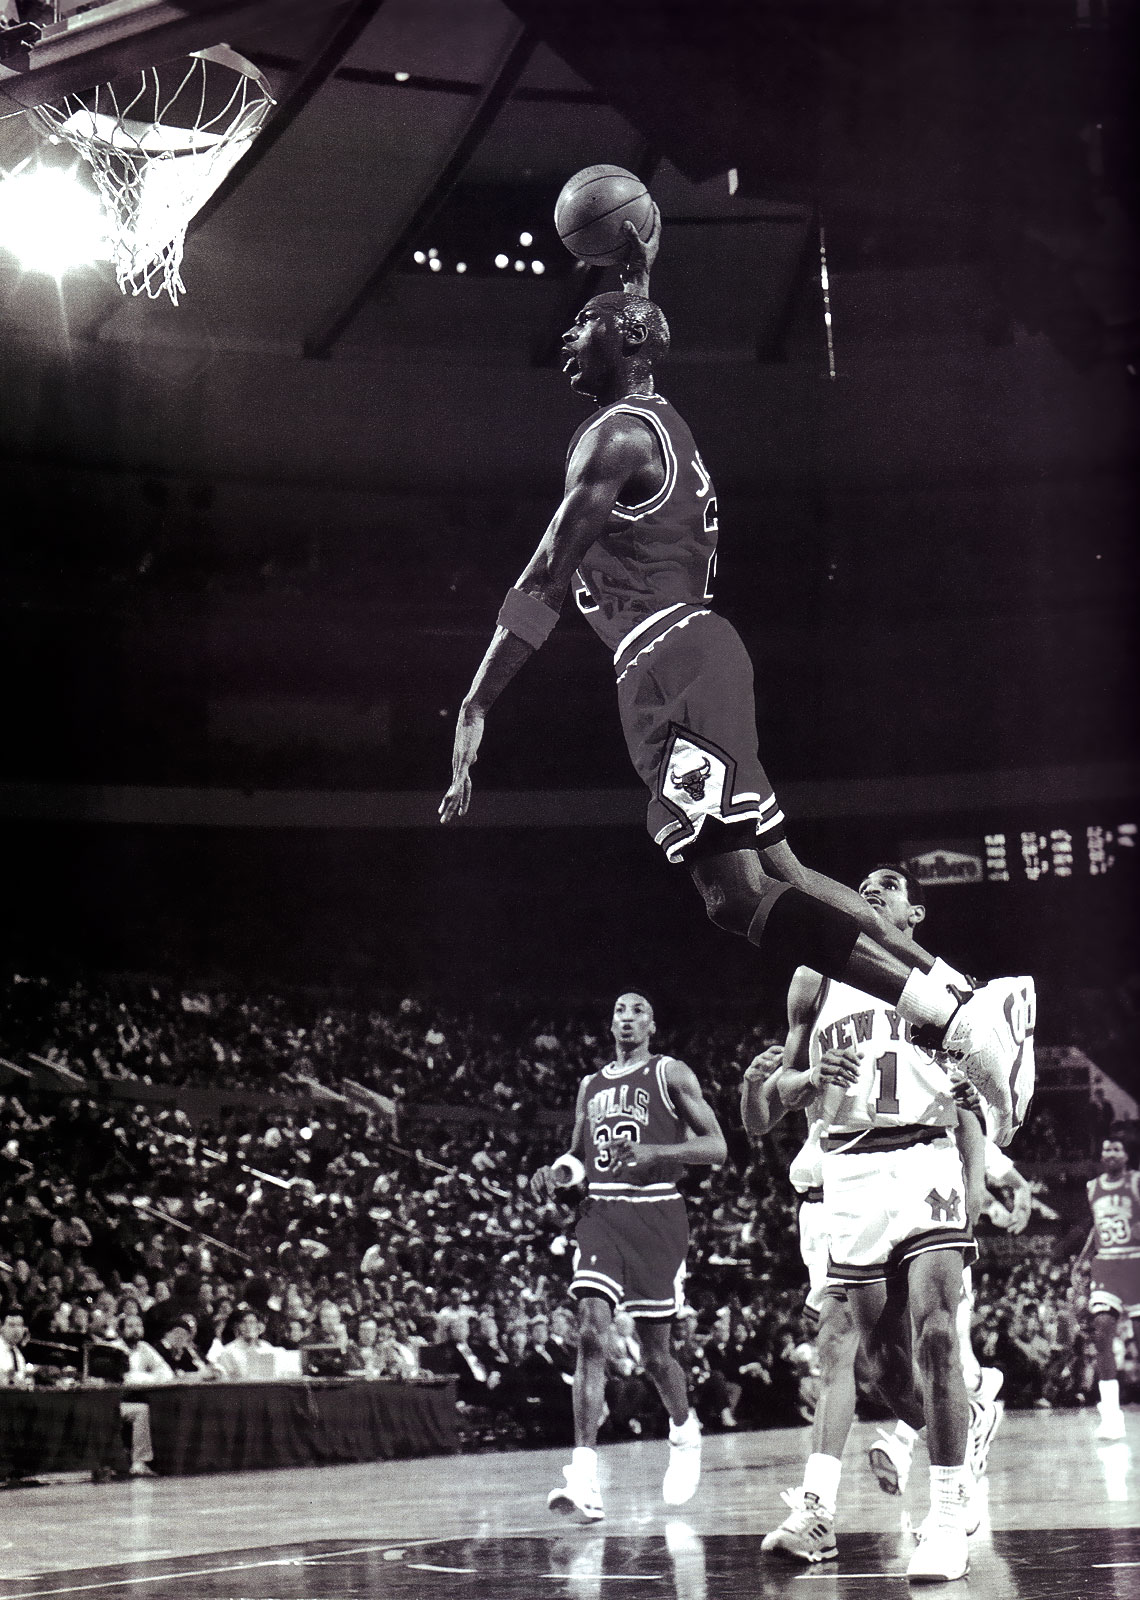 Michael Jordan Slam Dunk 1 11402151600 225355 HD Wallpaper 1140x1600